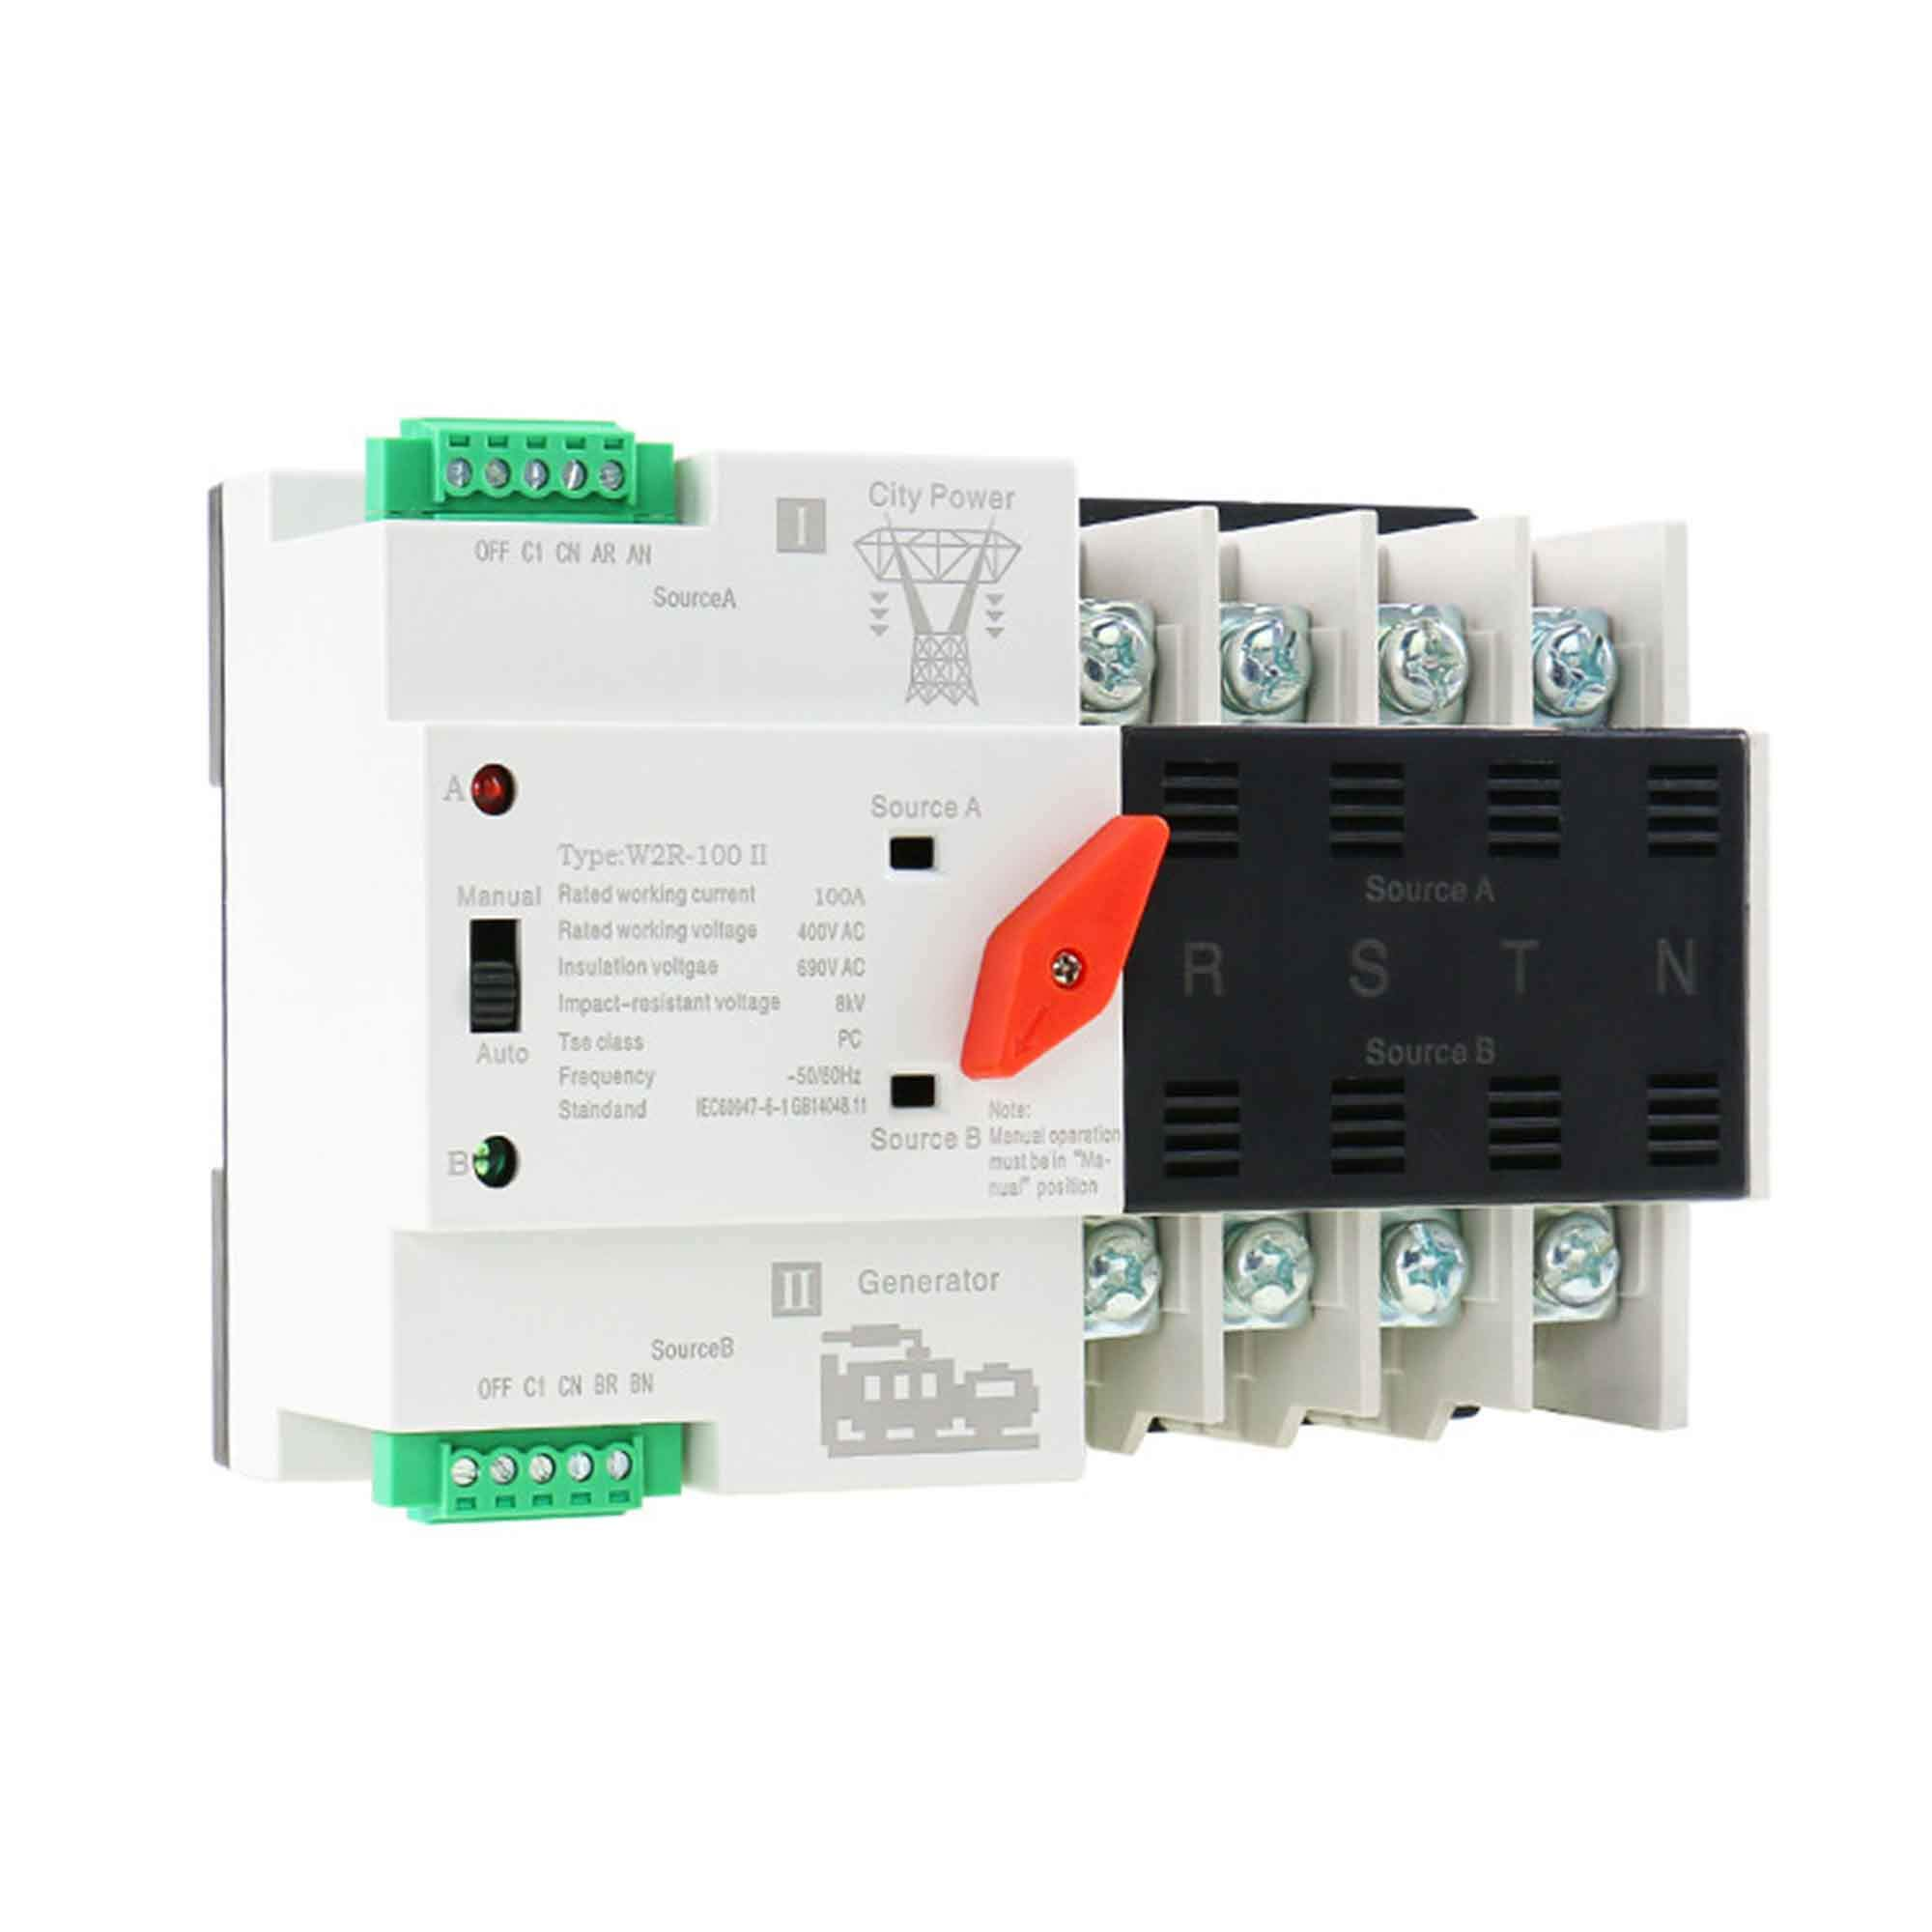 GAEYAELE W2R Mini ATS 4P Automatic Transfer Switch Controller Electrical Type ATS Max 100A 4POLE (W2R-4P 100A) by GAEYAELE (Image #3)